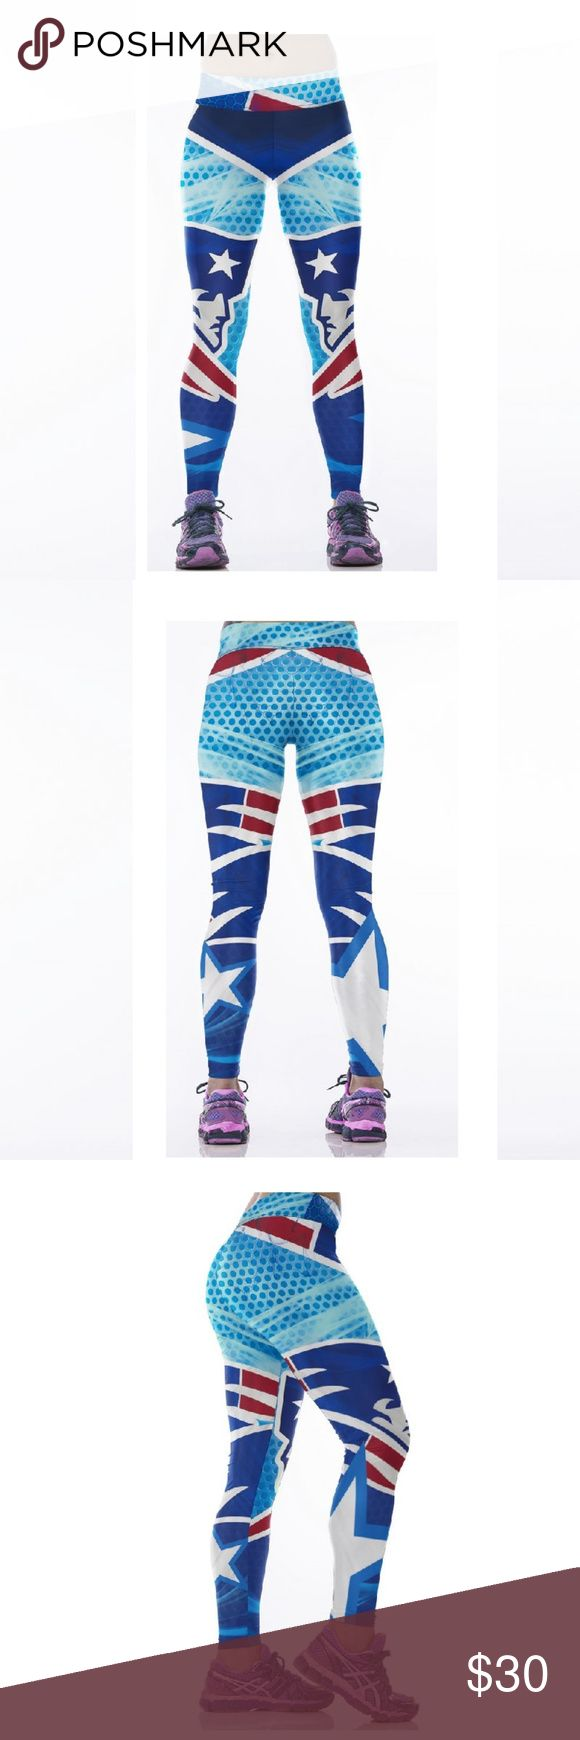 🏈SALE🏈 New England Patriots NFL Leggings Root for your favorite team in these high quality NFL leggings! Perfect wardrobe addition while watching Sunday football games. The vivid colors and designs are sure to turn heads! Get a pair now while they last to show your team support every week as they inch their way to the glorious Super Bowl.  Condition: Brand New in Packaging Material: Spandex / Polyester Measurements:  (Length / Waist / Hip) S/M: 36 / 27.5-37 / 33-41.5 L/XL: 36.5 / 30 – 39.5…